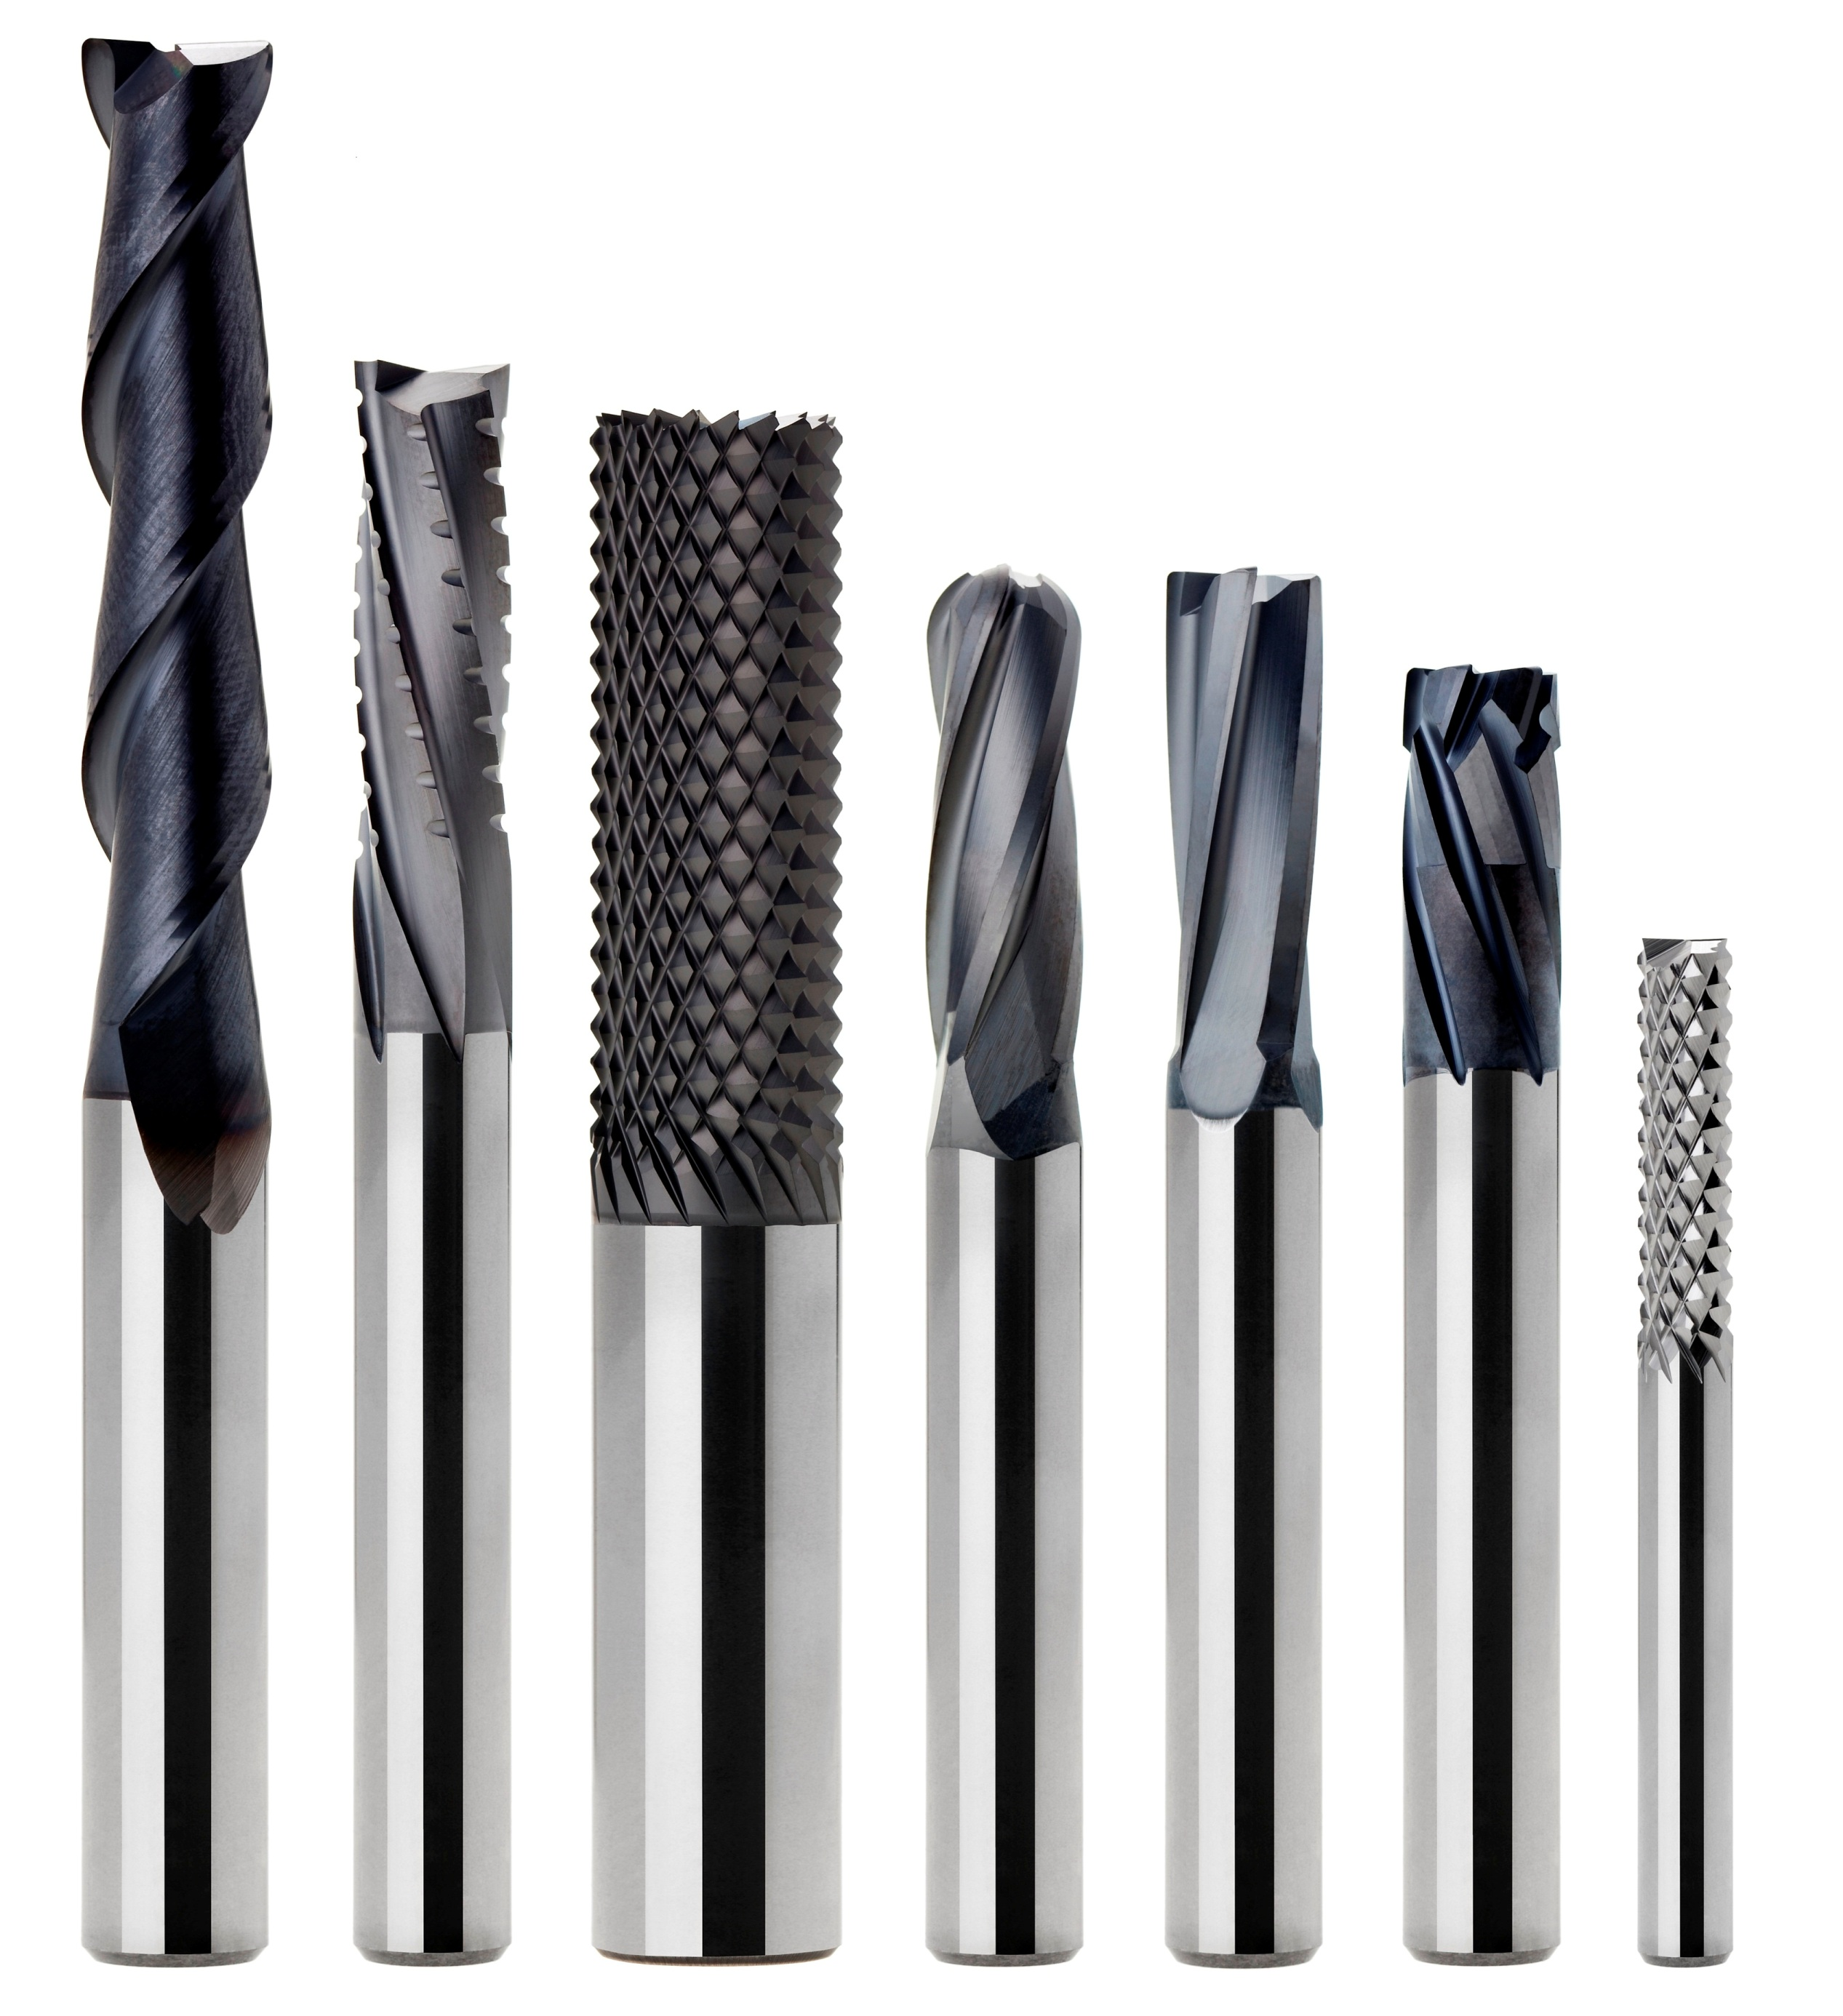 seco tools announces first product line for composites